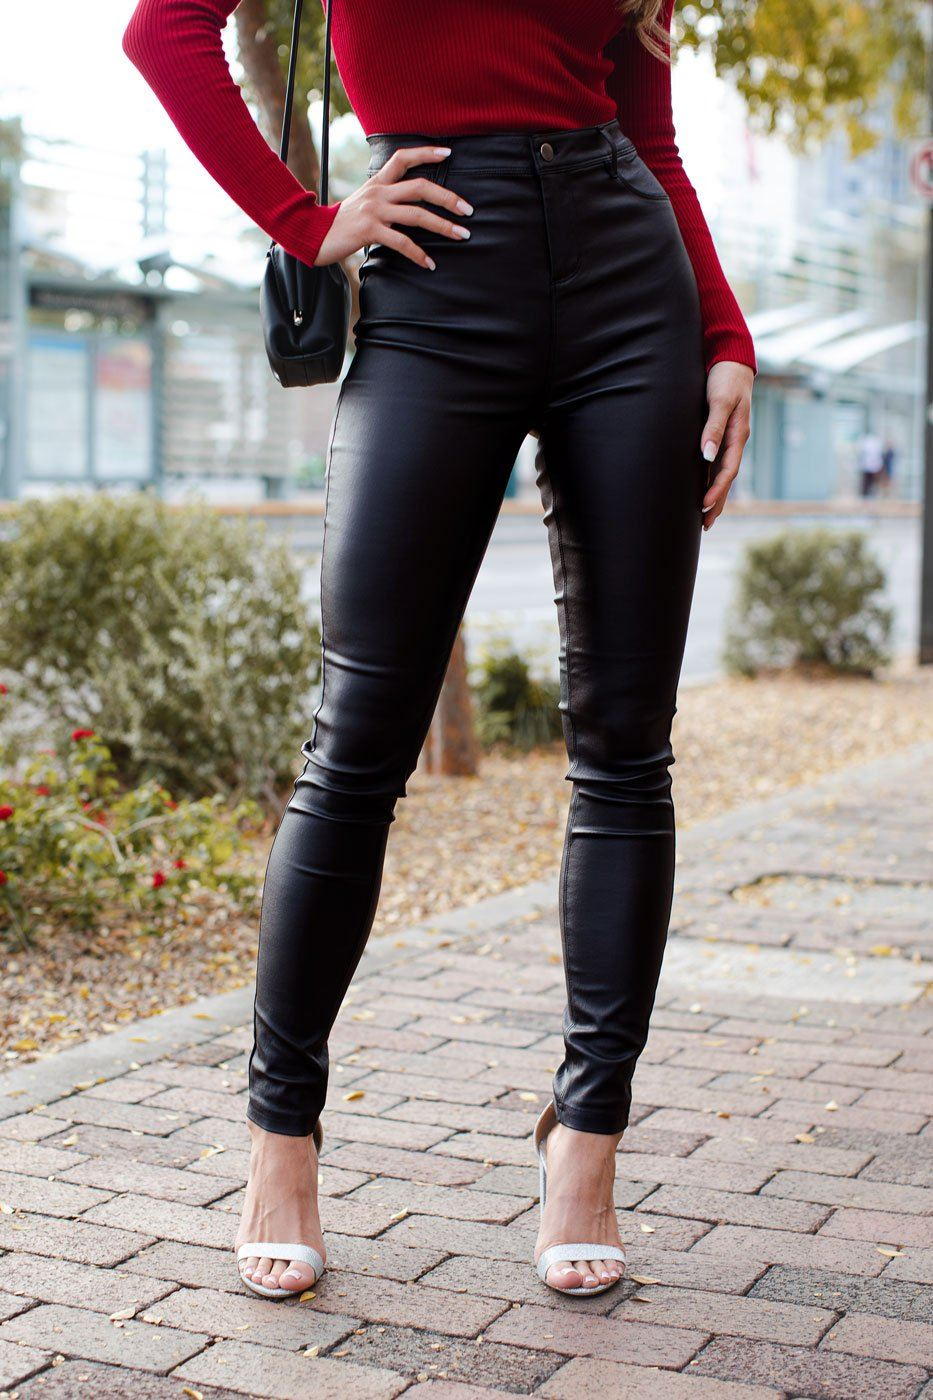 long legs leather pants Trophy Wife Fashions